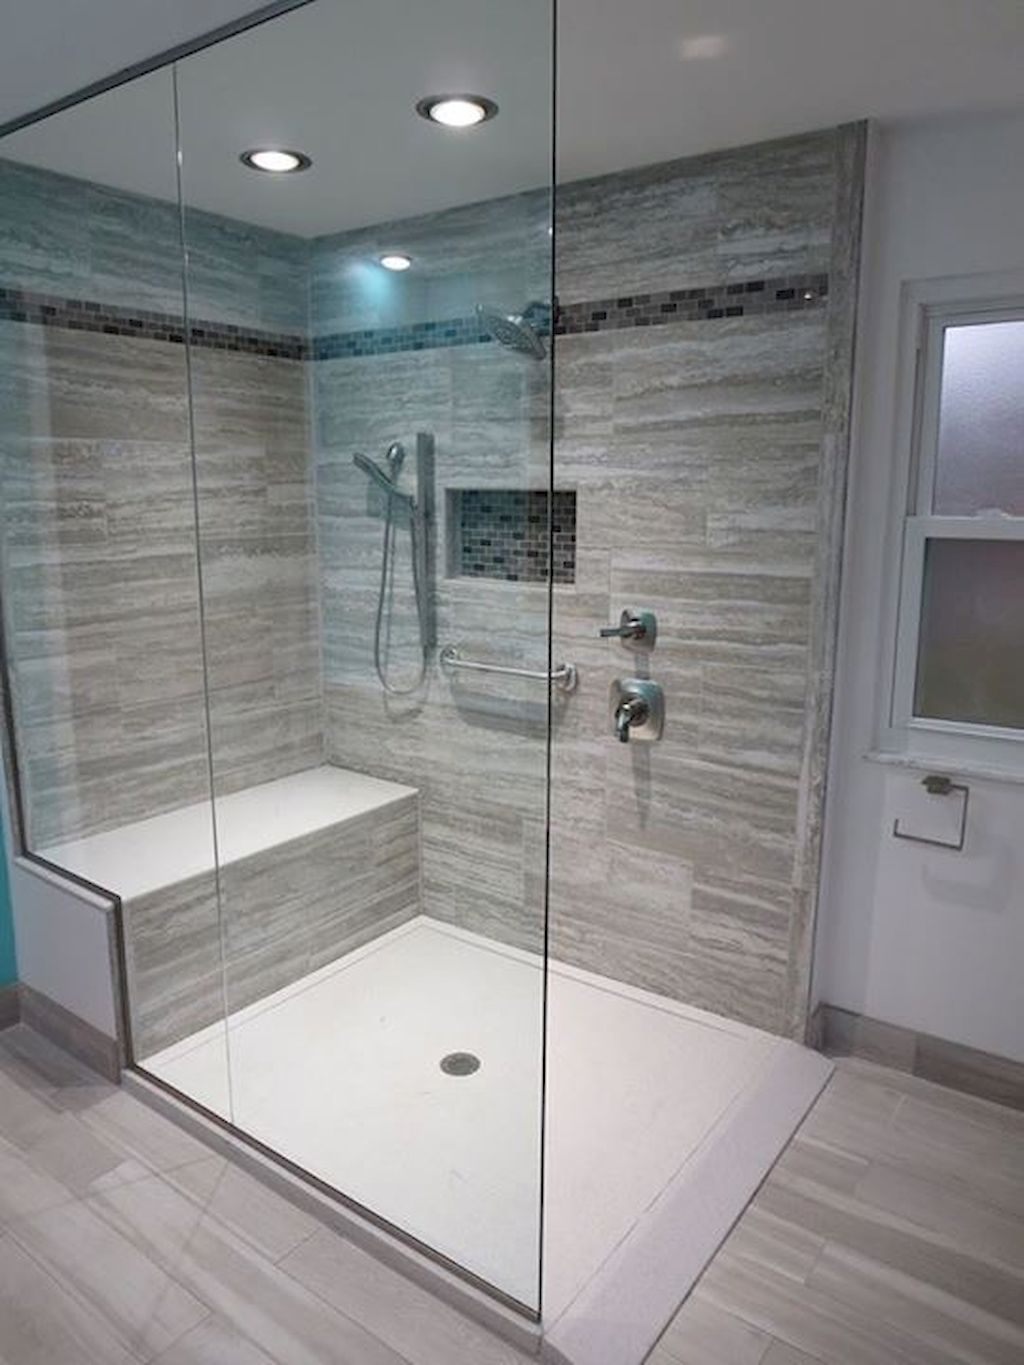 Awesome 120 Stunning Bathroom Tile Shower Ideas Https Coachdecor Com 120 Stunning Bathroom Tile Sh Bathroom Shower Tile Bathroom Remodel Shower Tile Bathroom - Duschkabinen Container